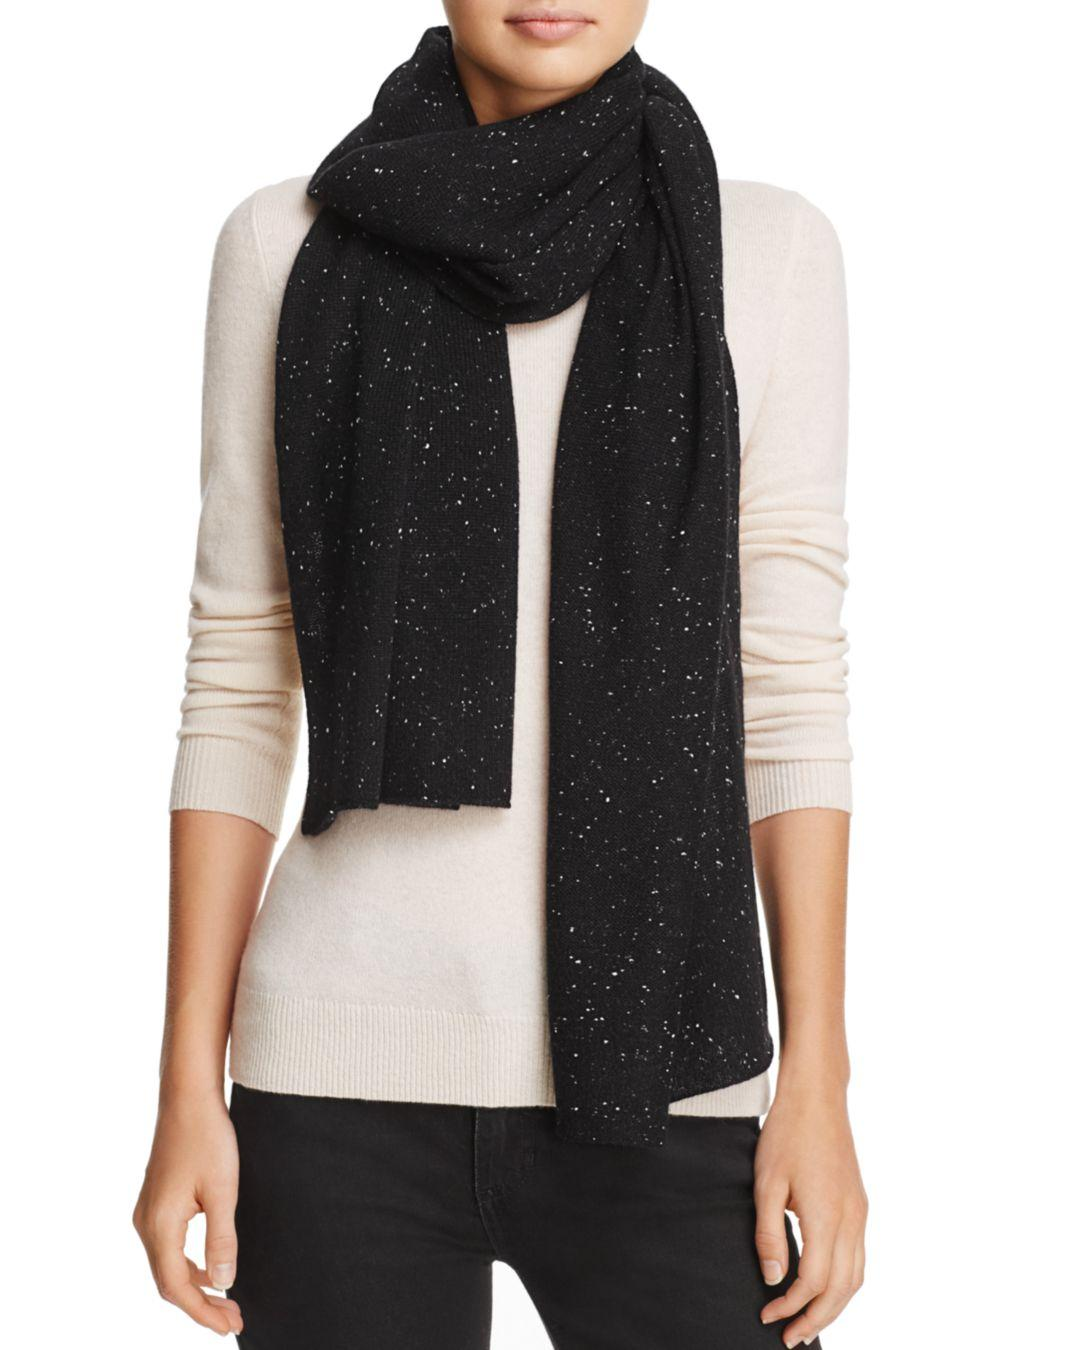 fb709fc6e C By Bloomingdale's Aqua Cashmere Donegal Cashmere Scarf in Black - Lyst